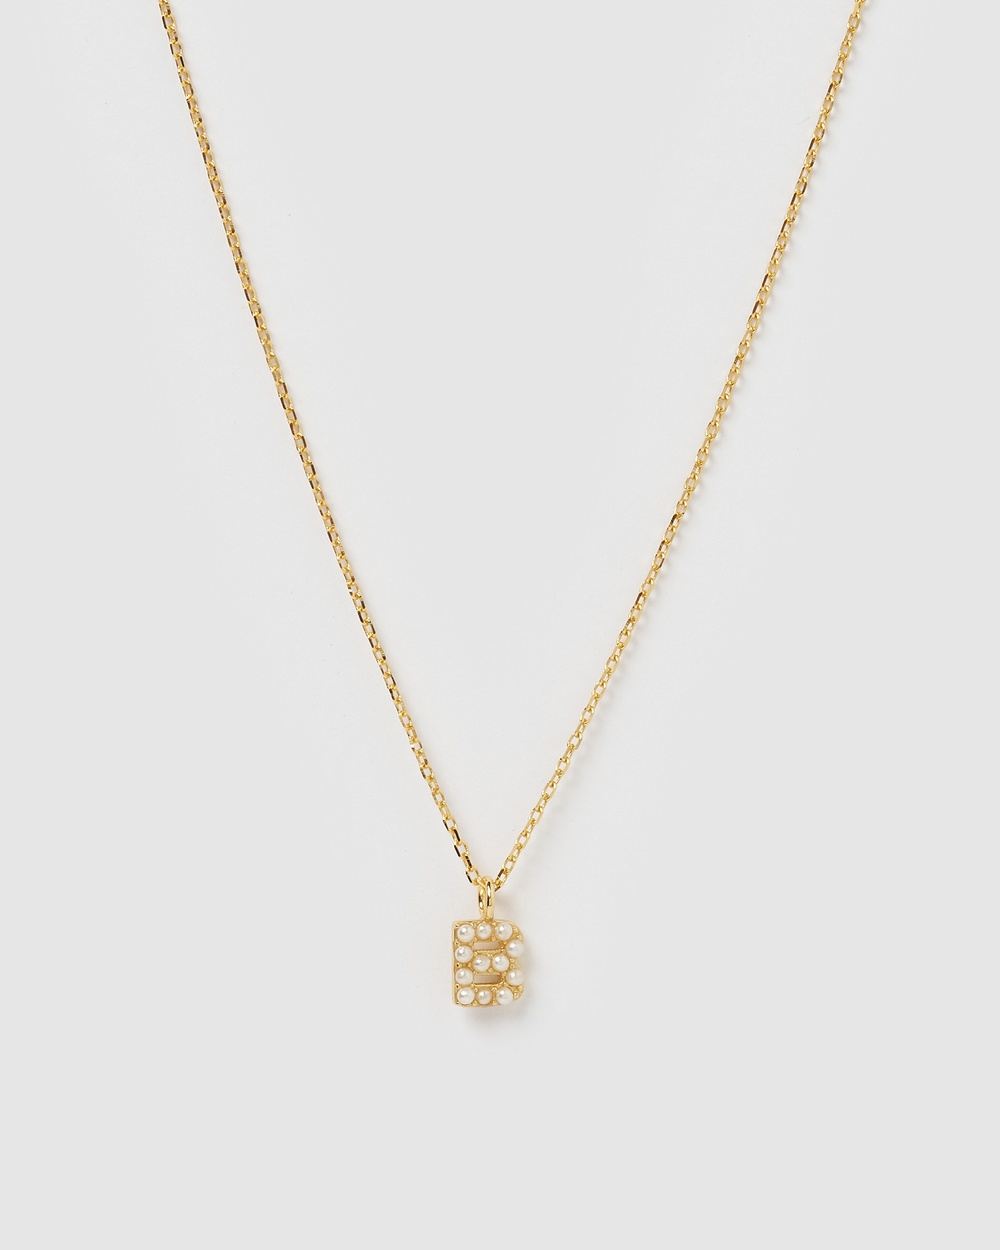 Izoa Pearl Letter B Necklace Gold Jewellery Gold